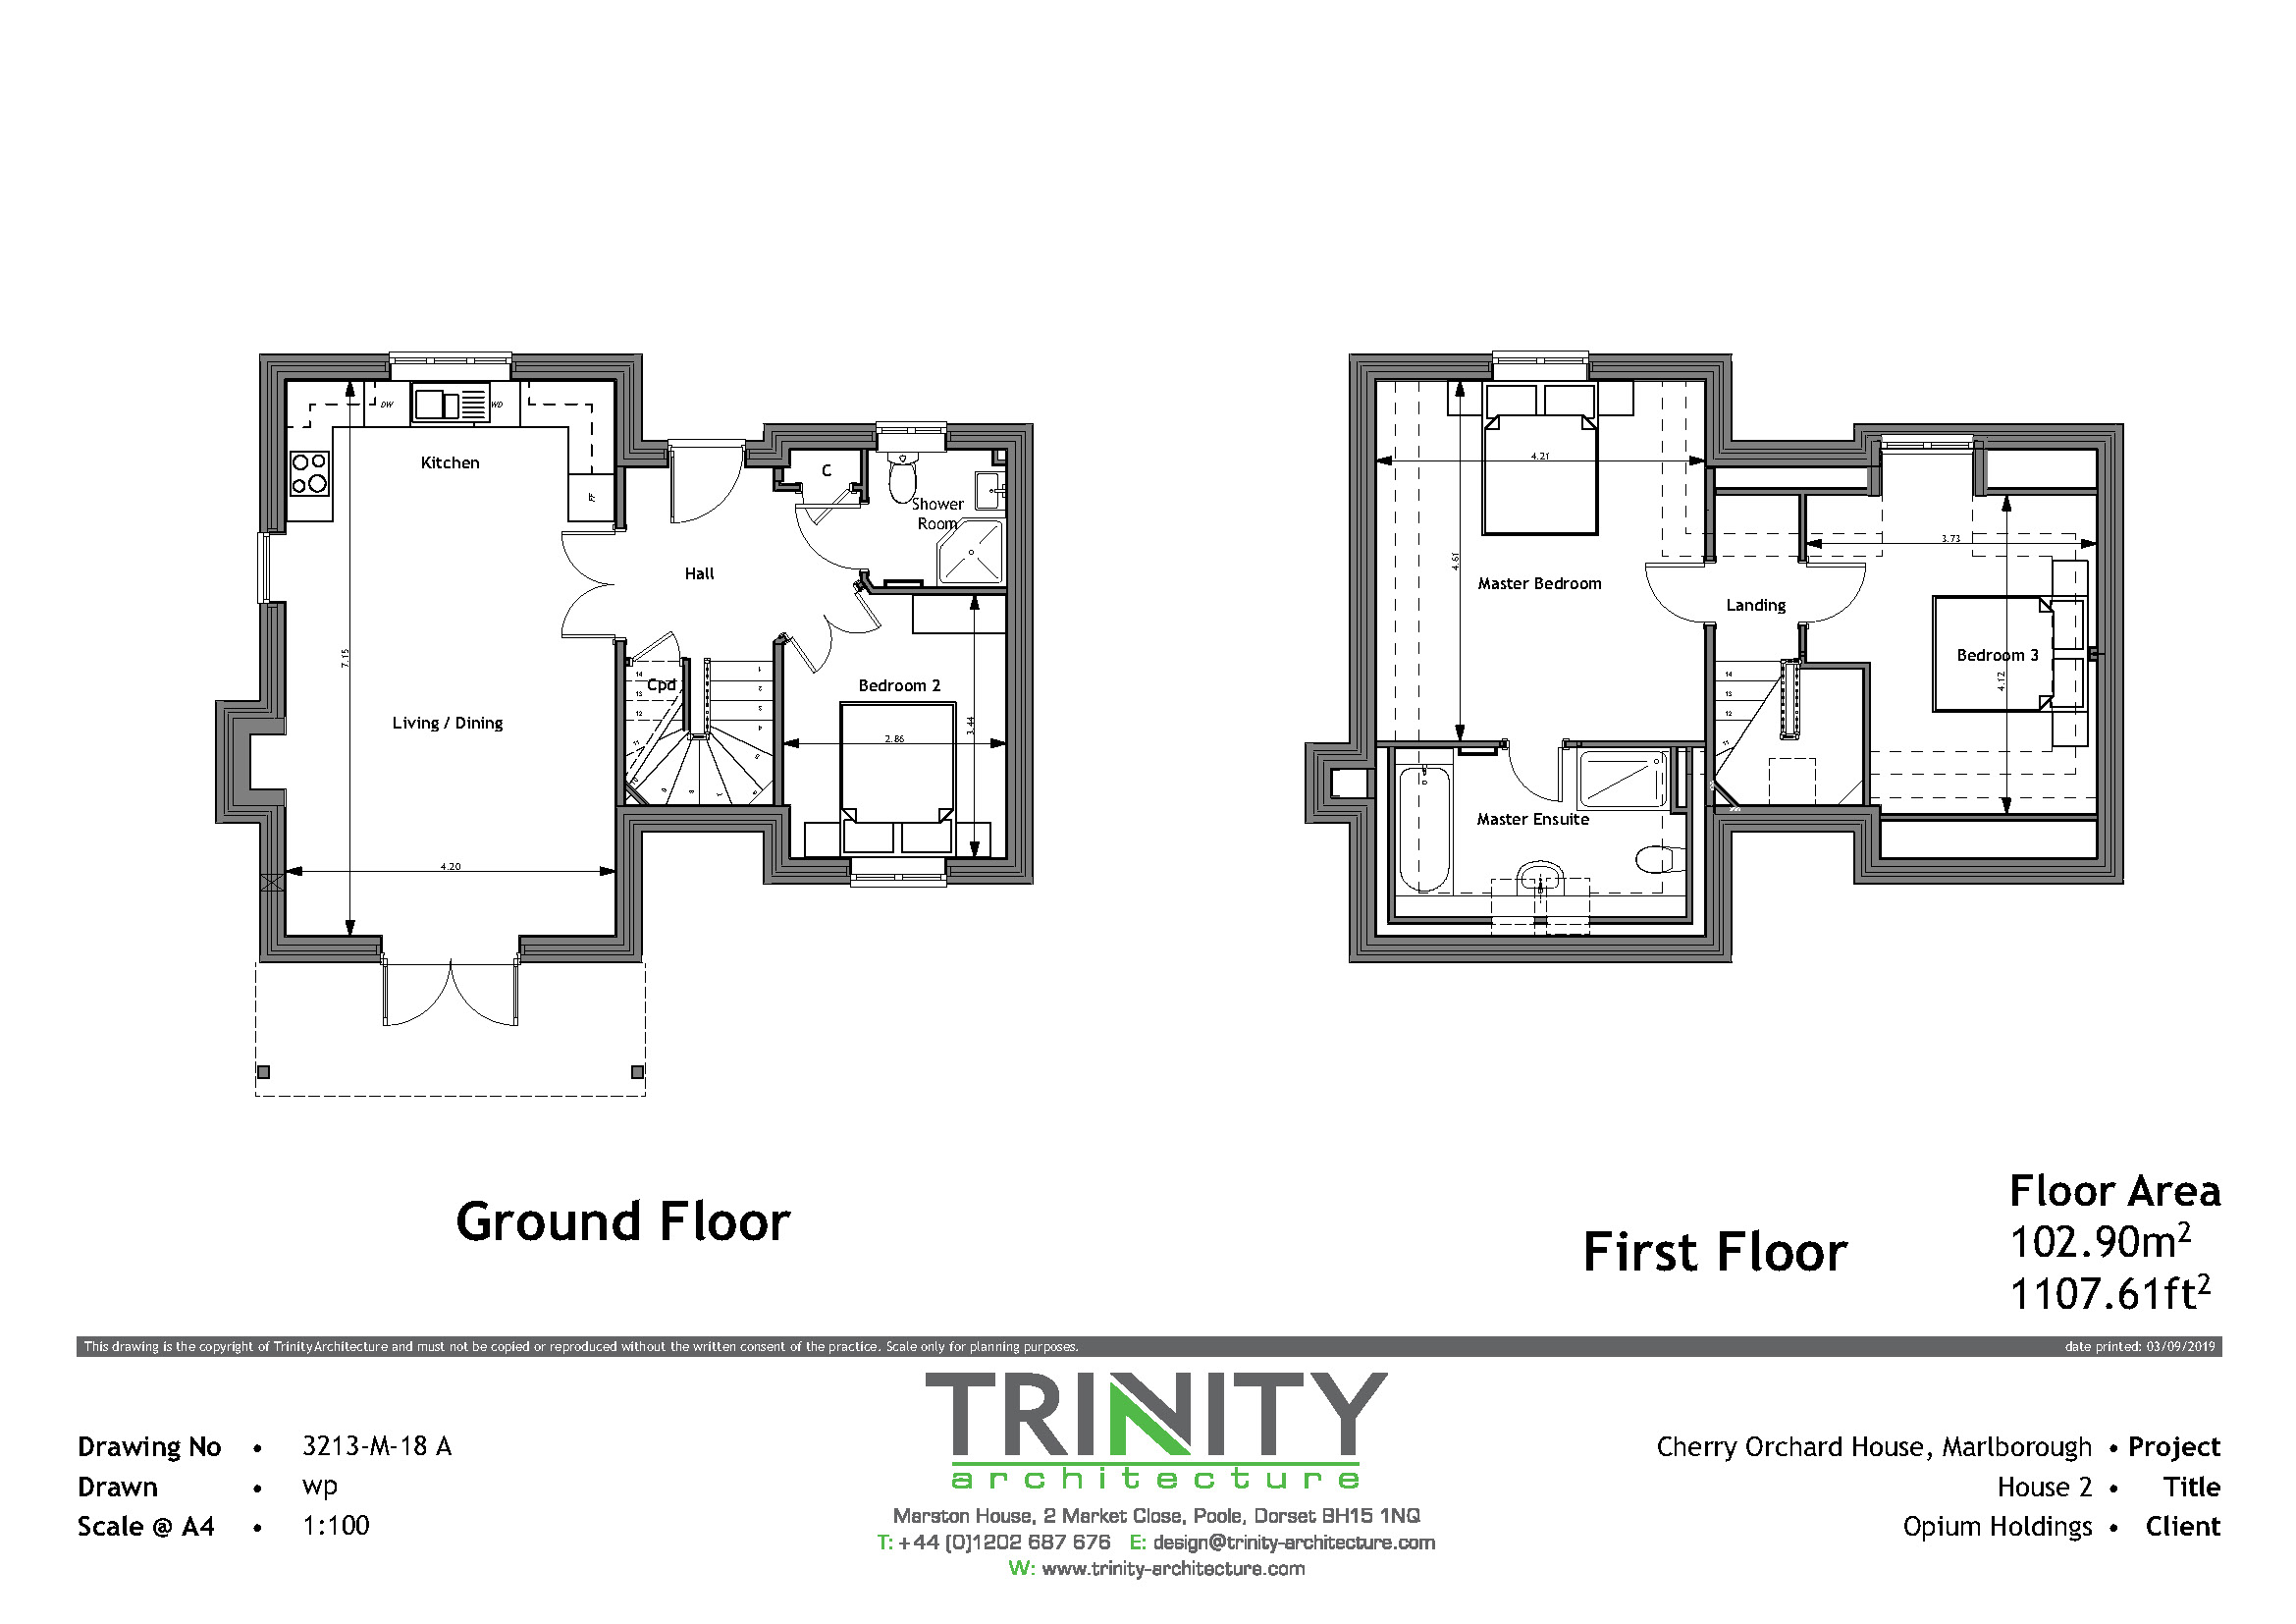 3 bedroom property for sale in Cherry Orchard House